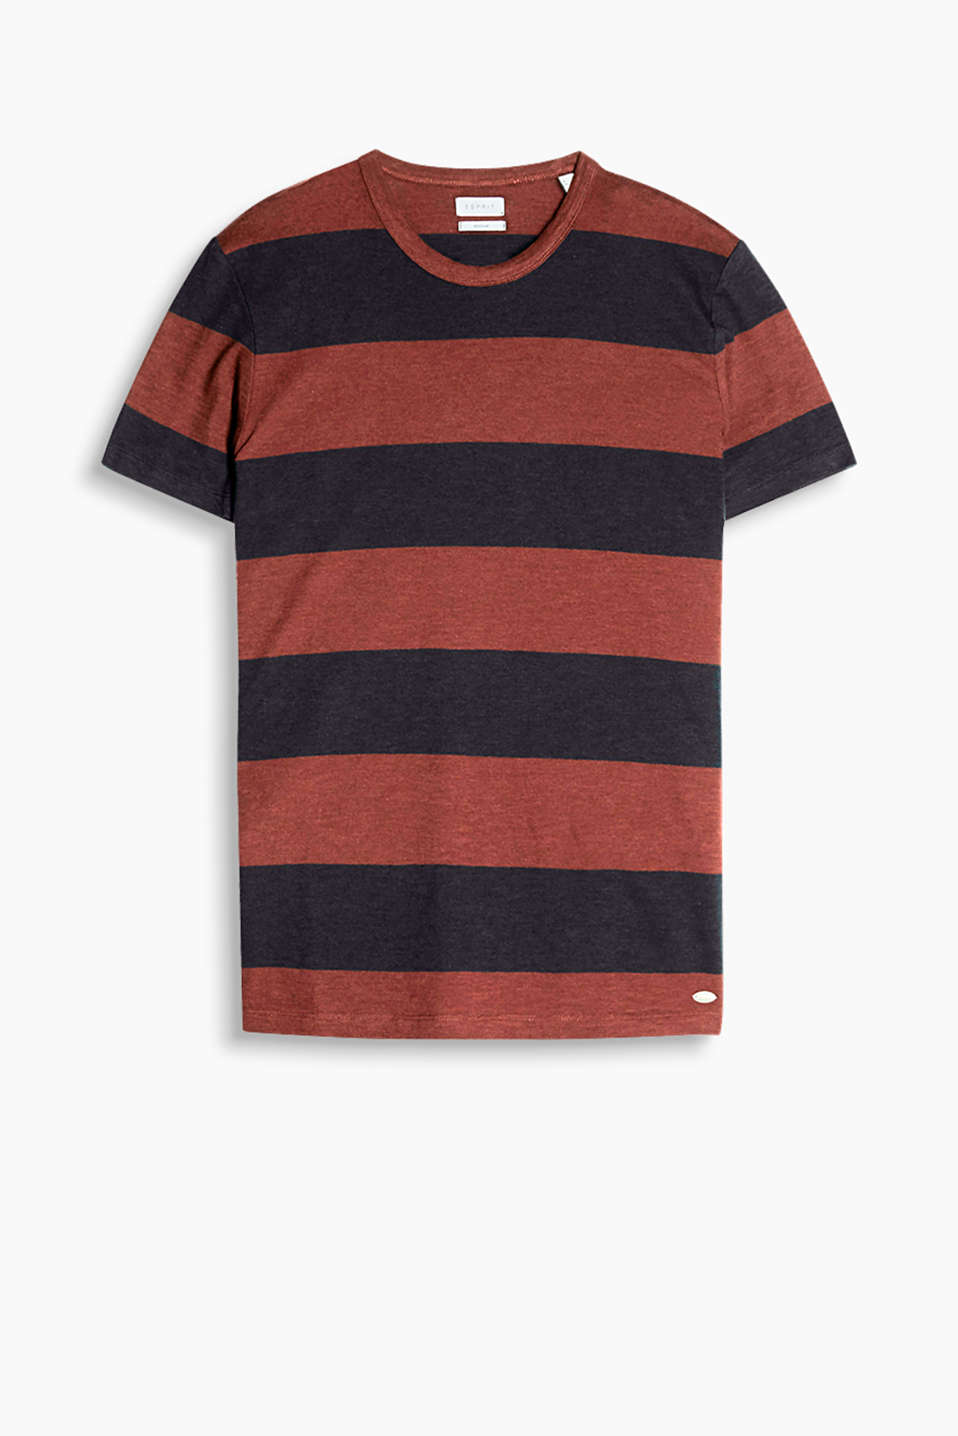 With block stripes: slub jersey T-shirt in 100% cotton